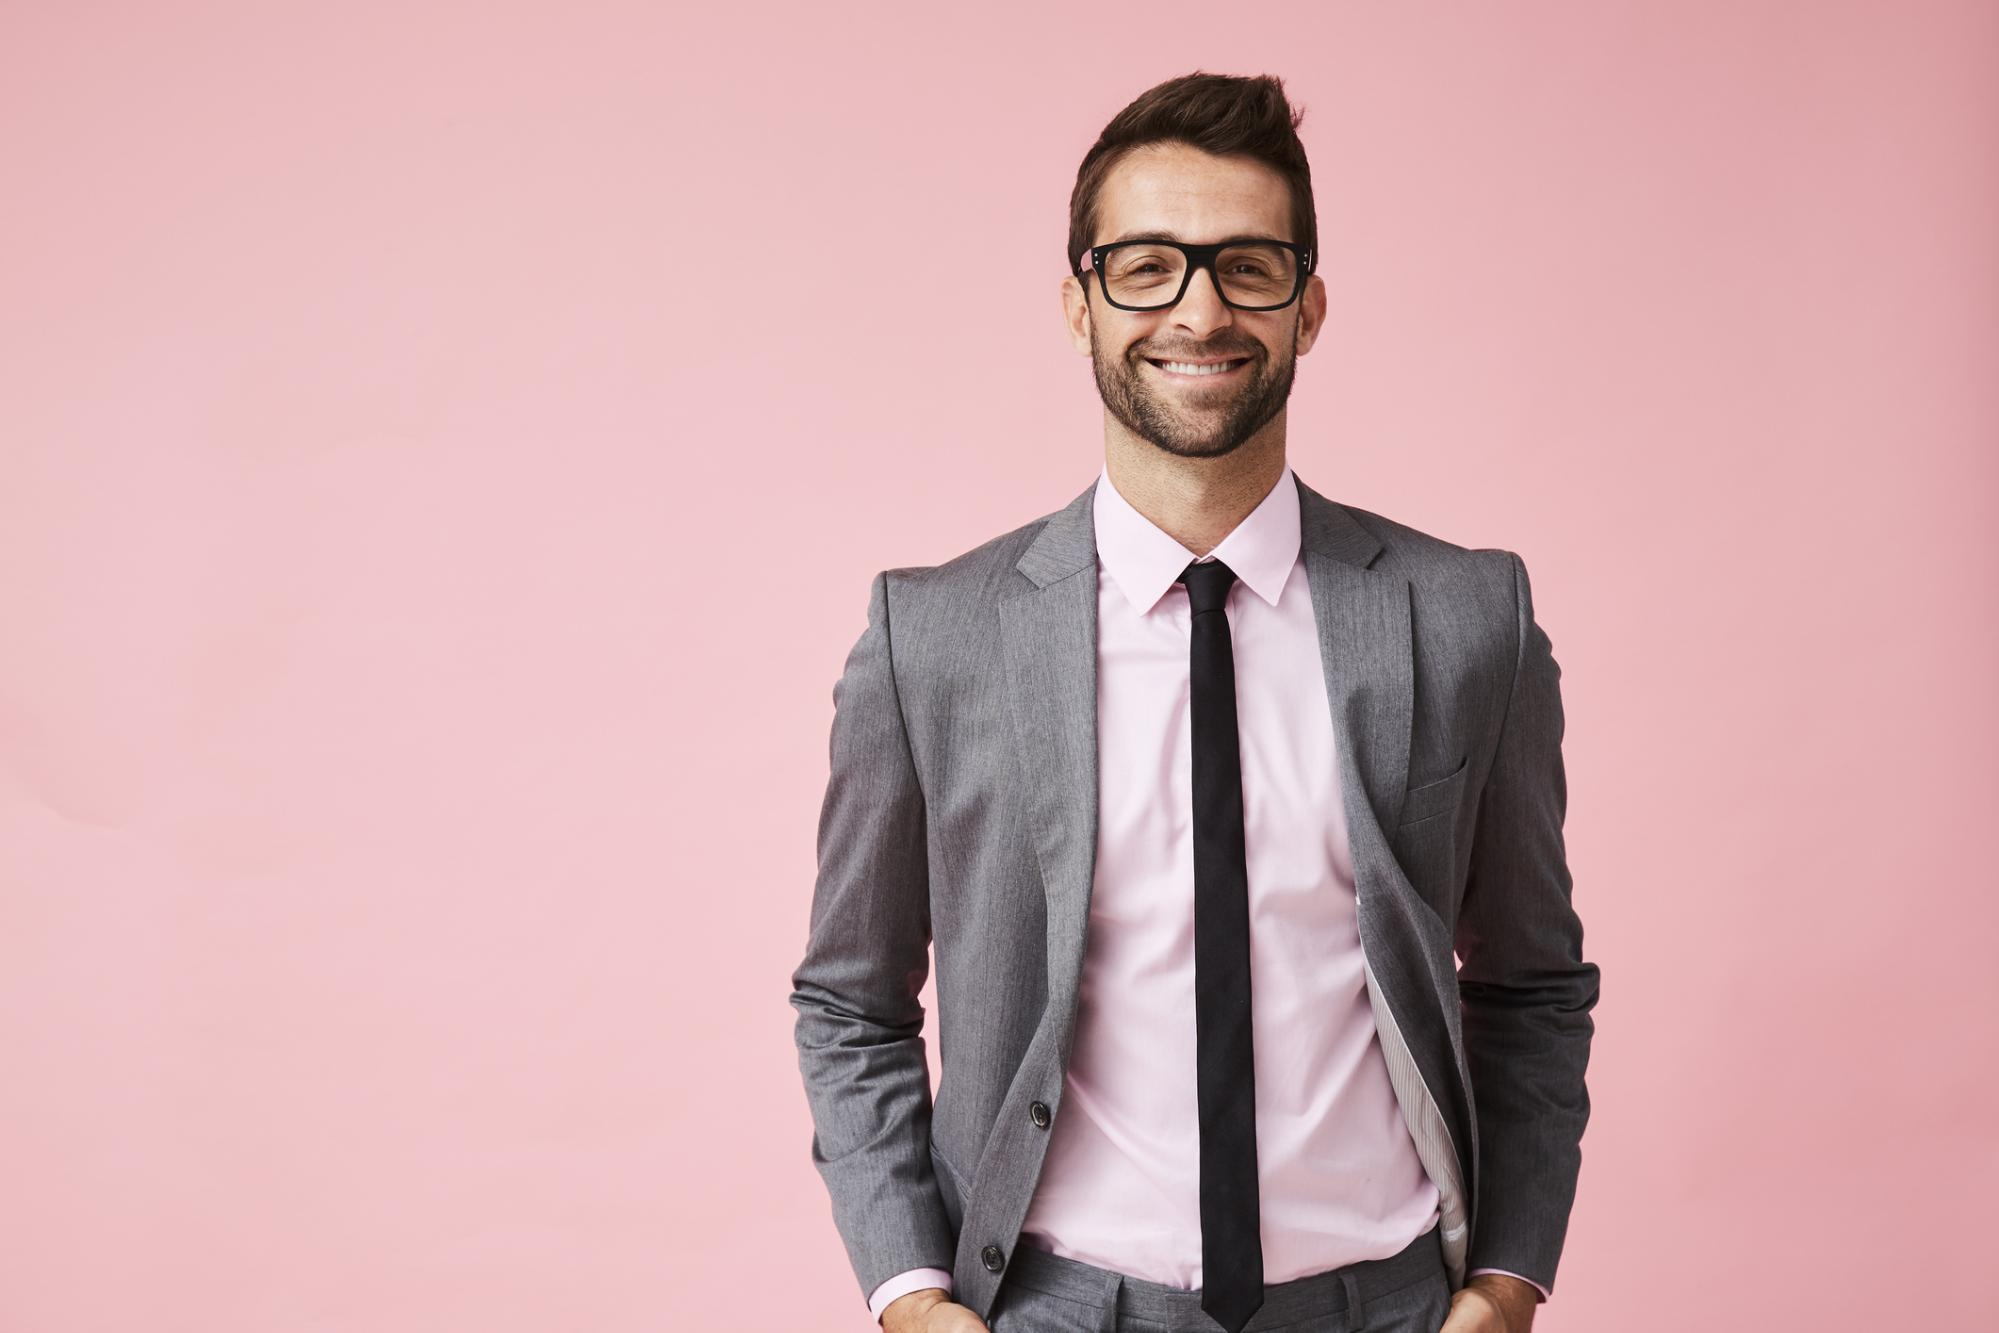 smiling young man in suit and glasses